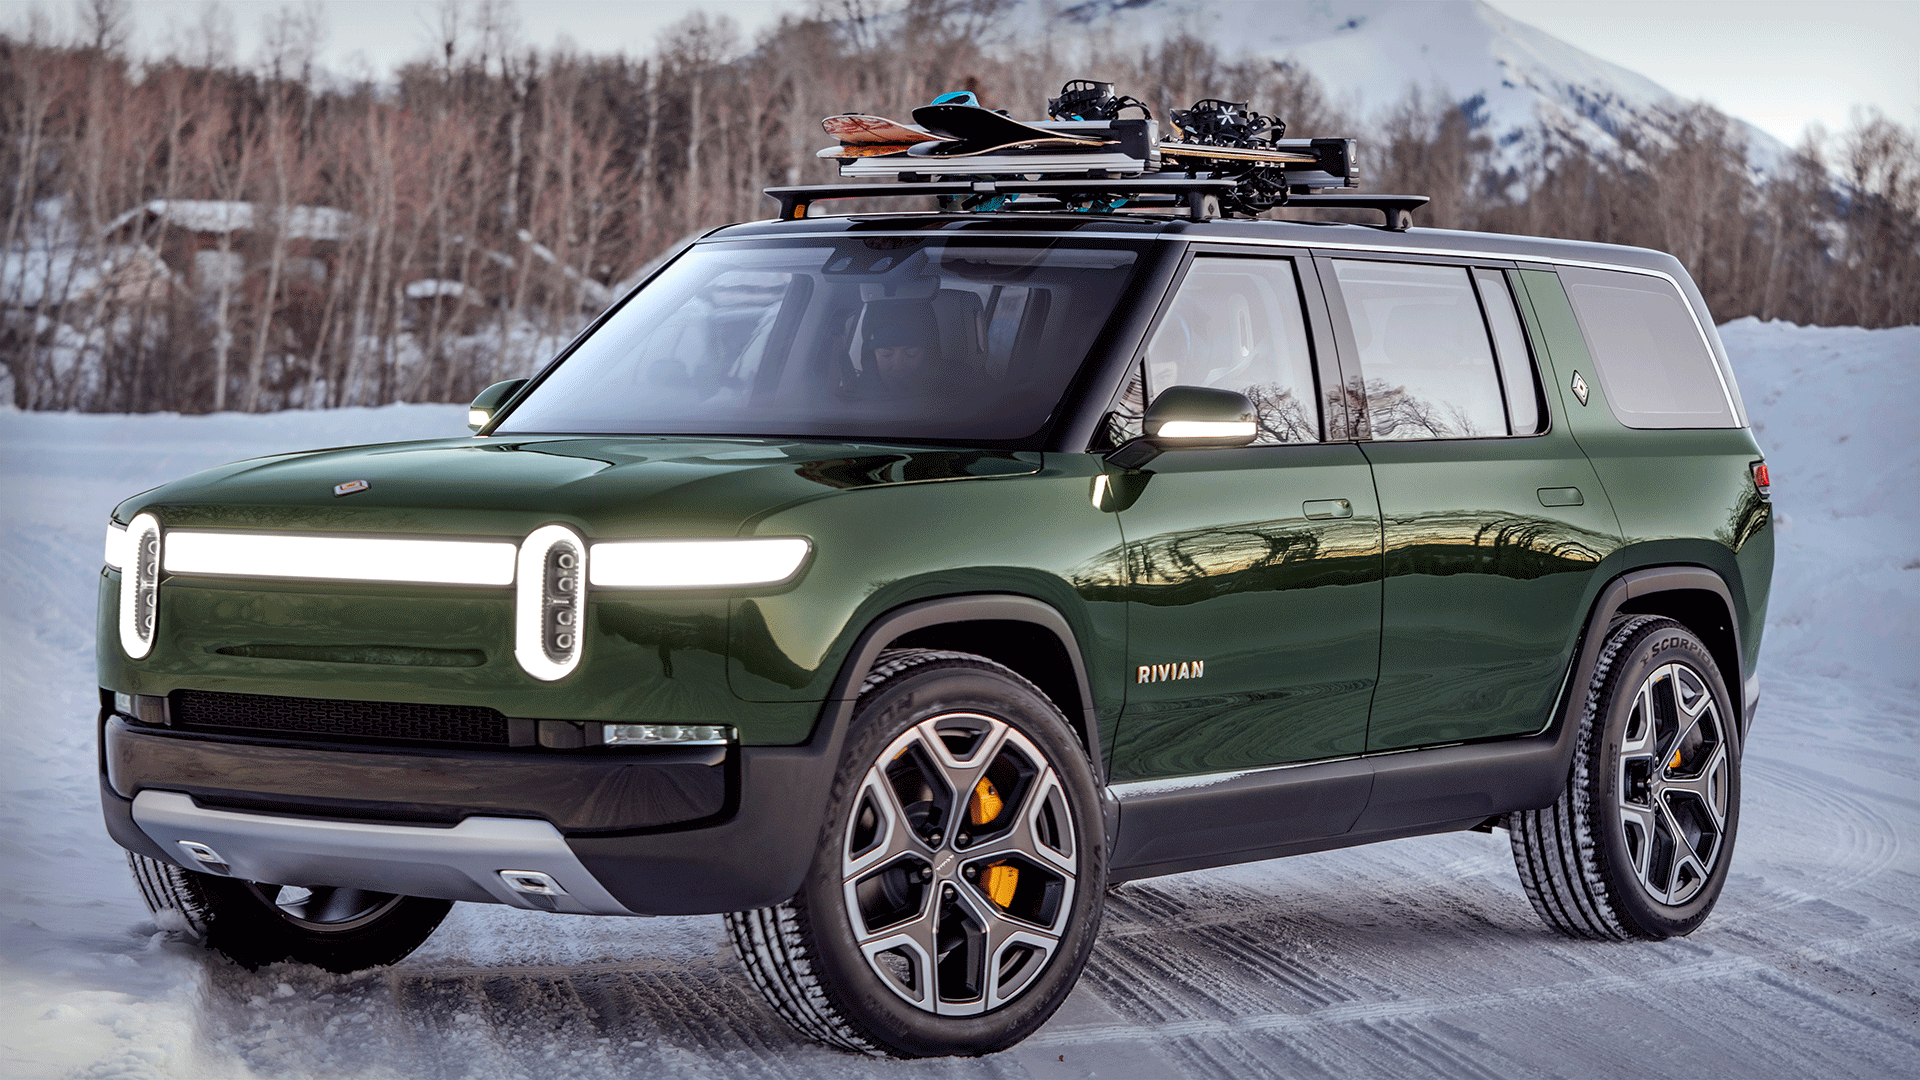 12 Cars Built for Your New Year's Resolutions